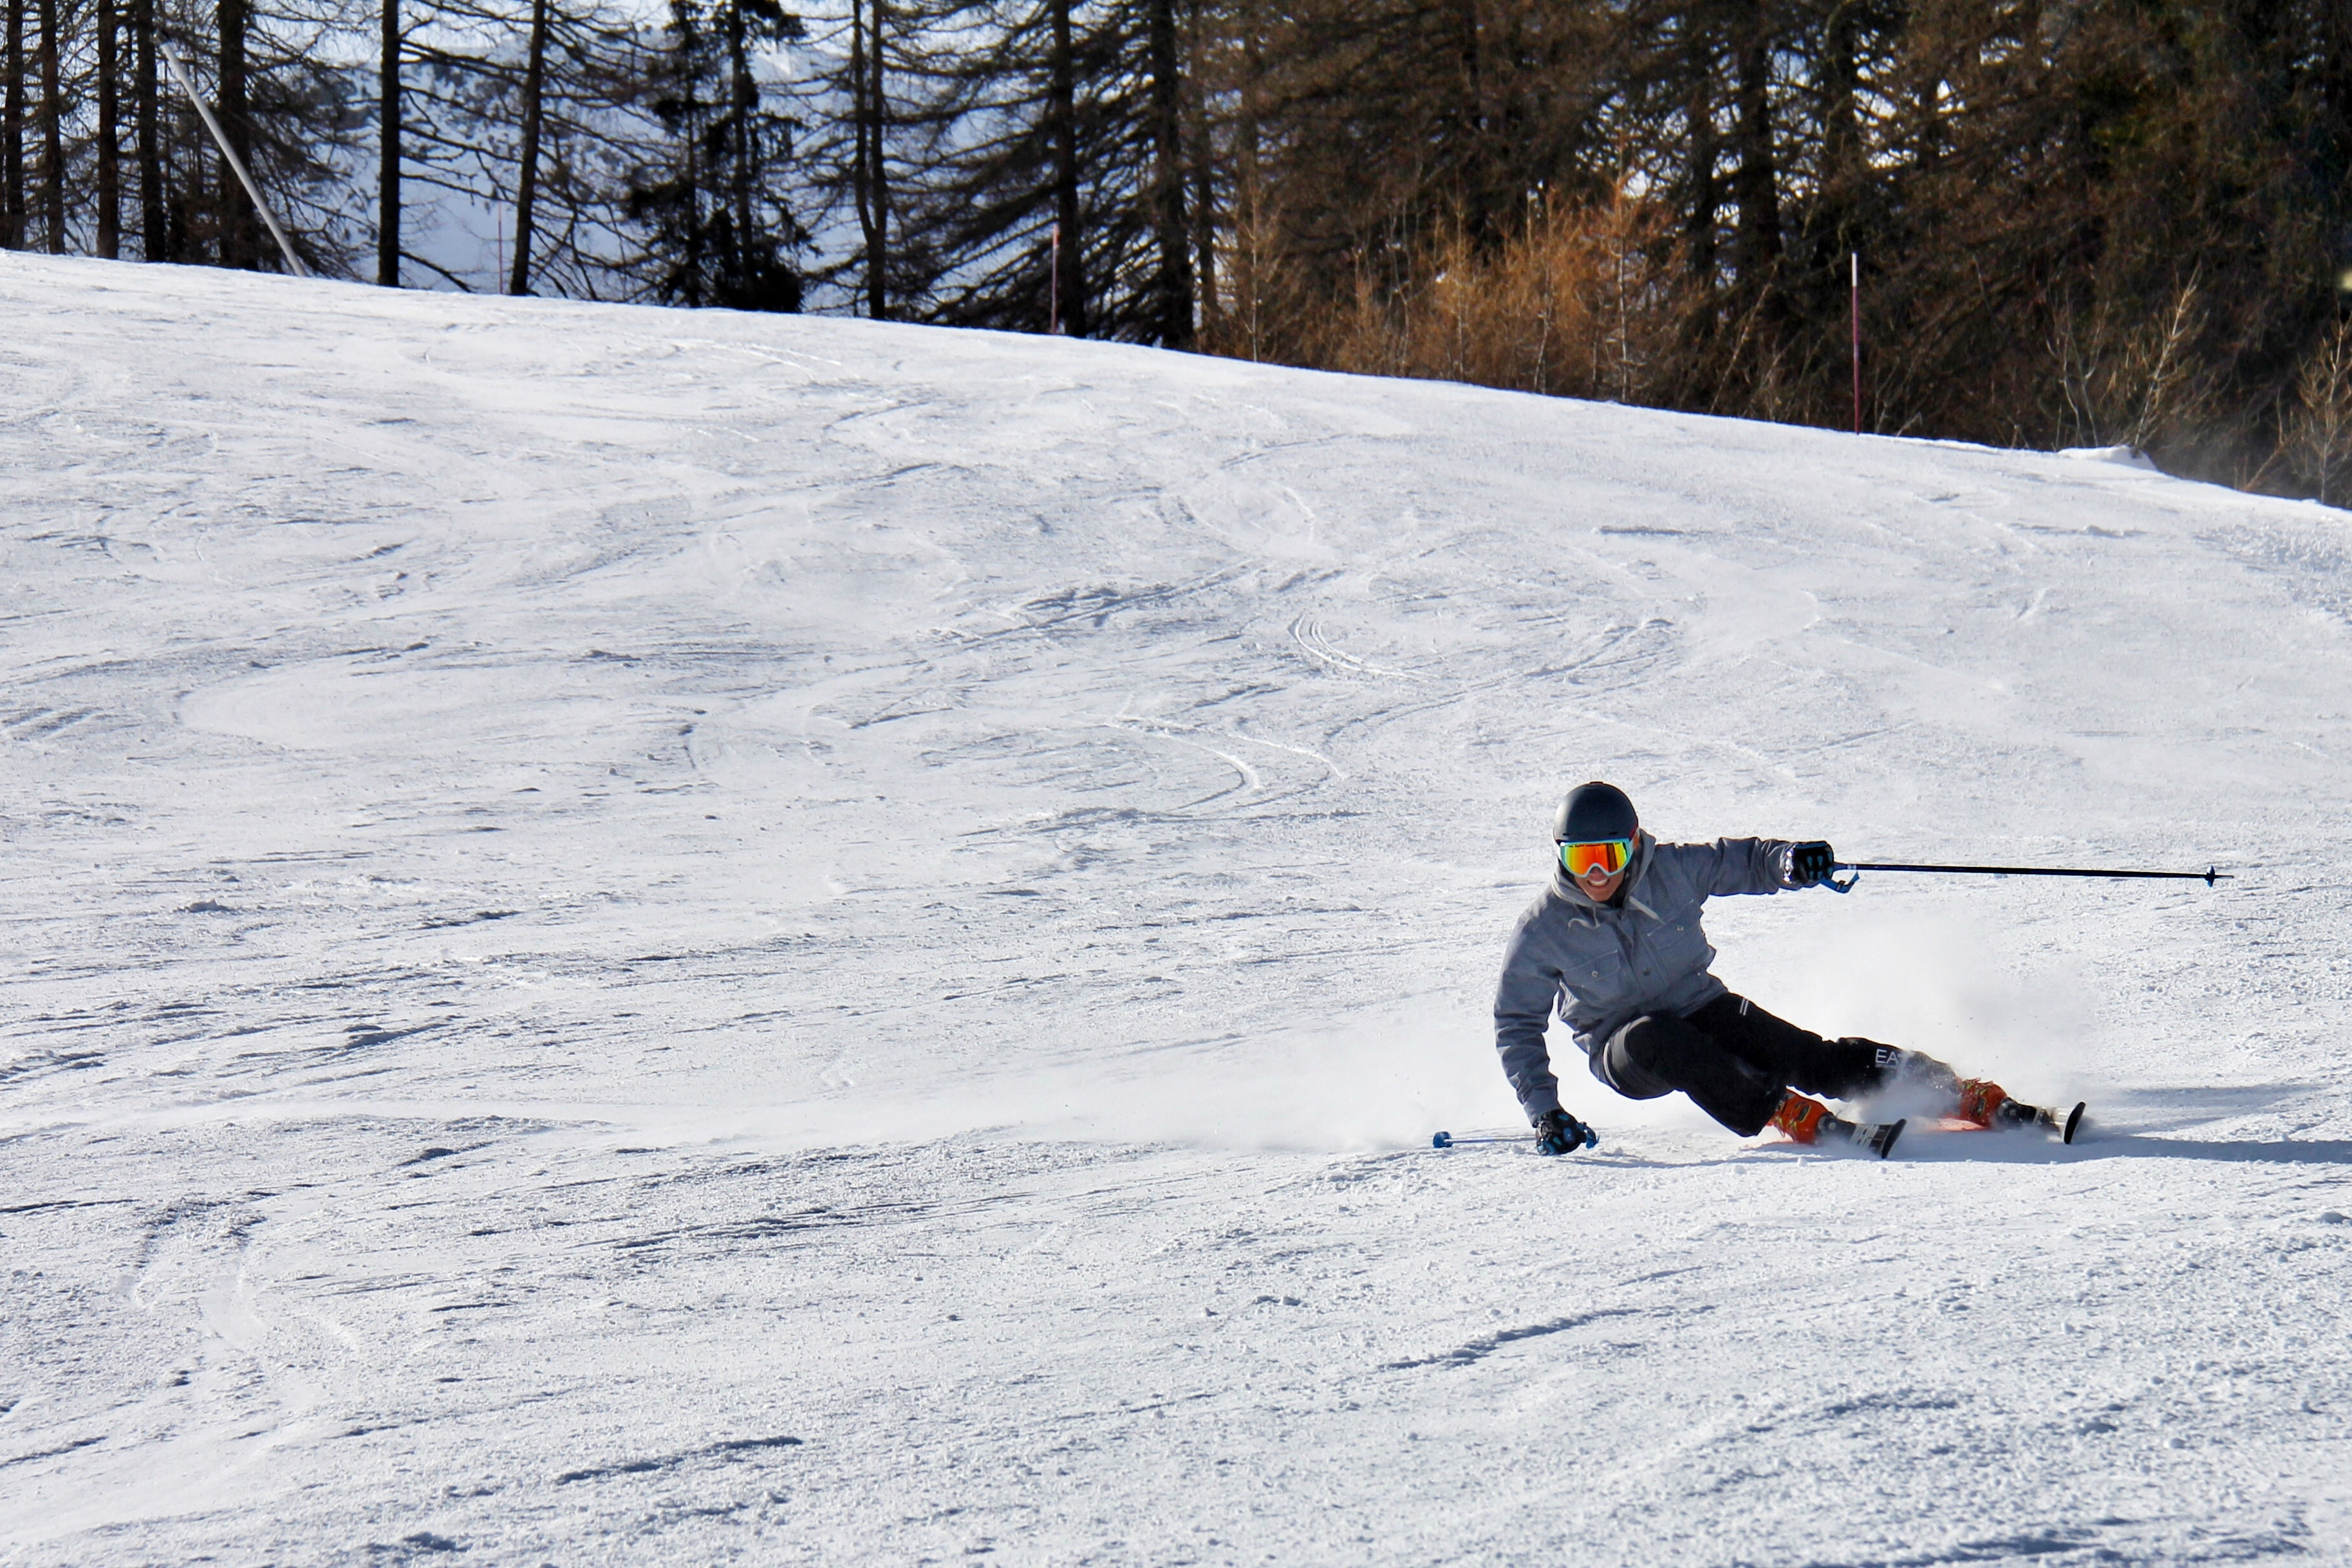 person in gray jacket and black pants skiing downhill